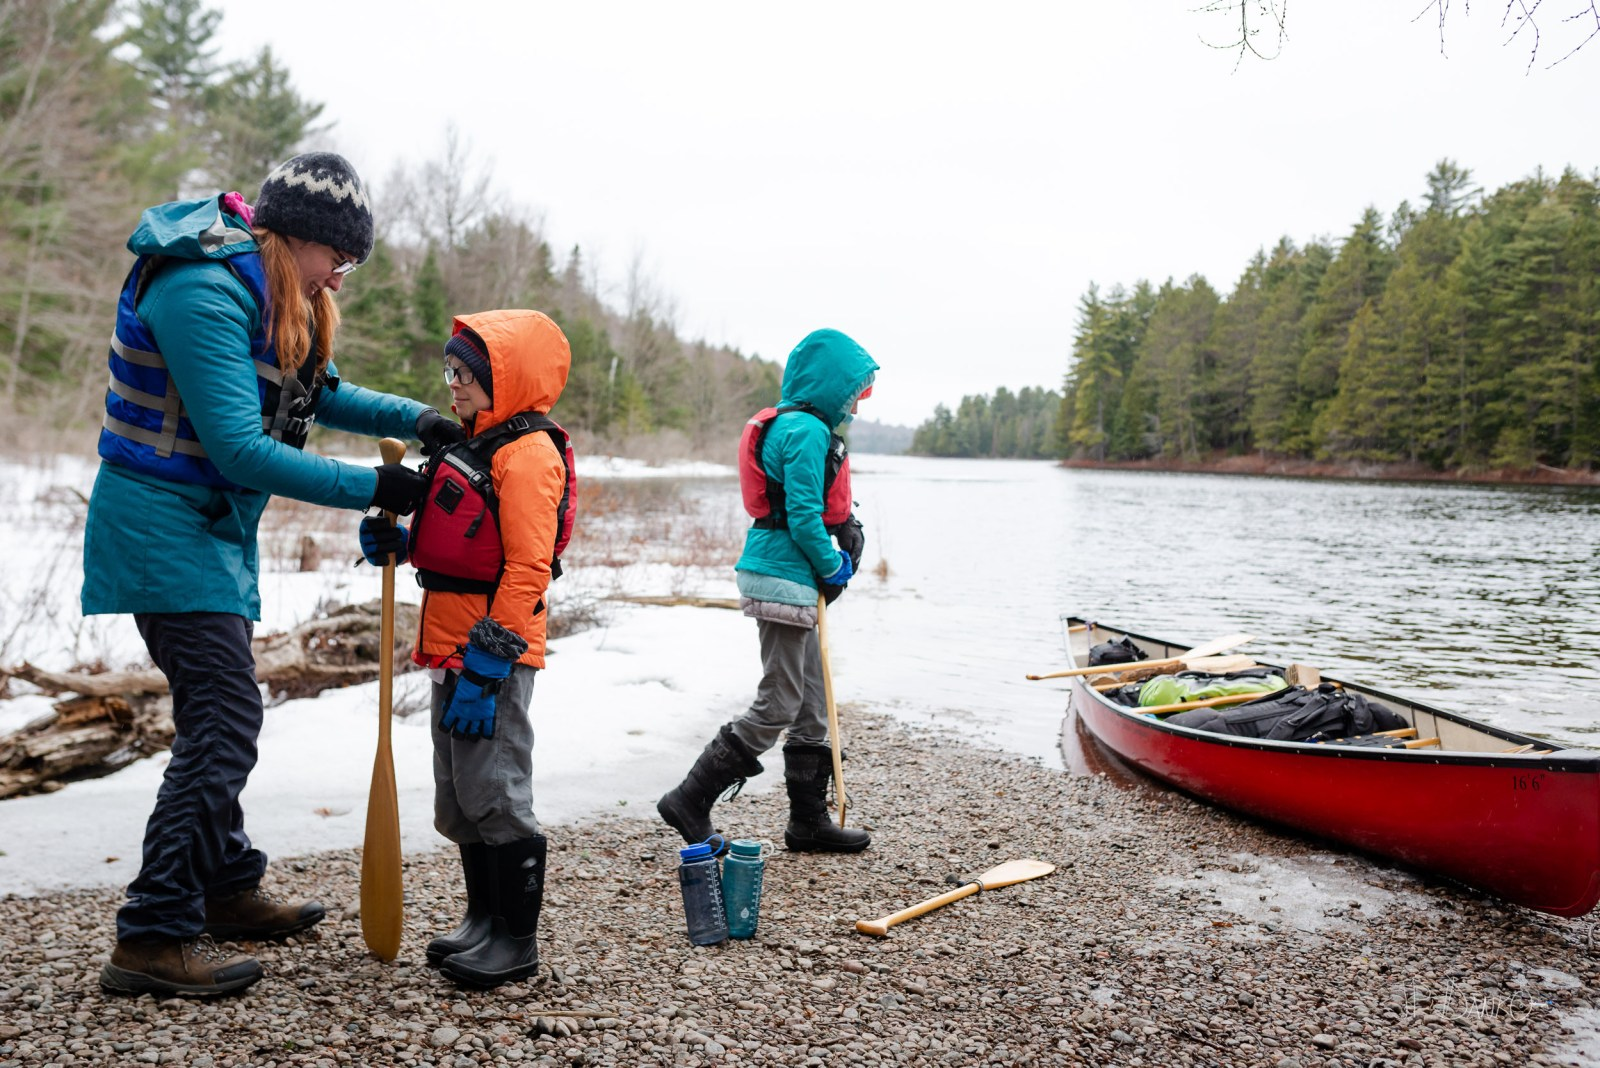 Family Lifejacket Spring Red Canoe Trip Backcountry Wilderness S